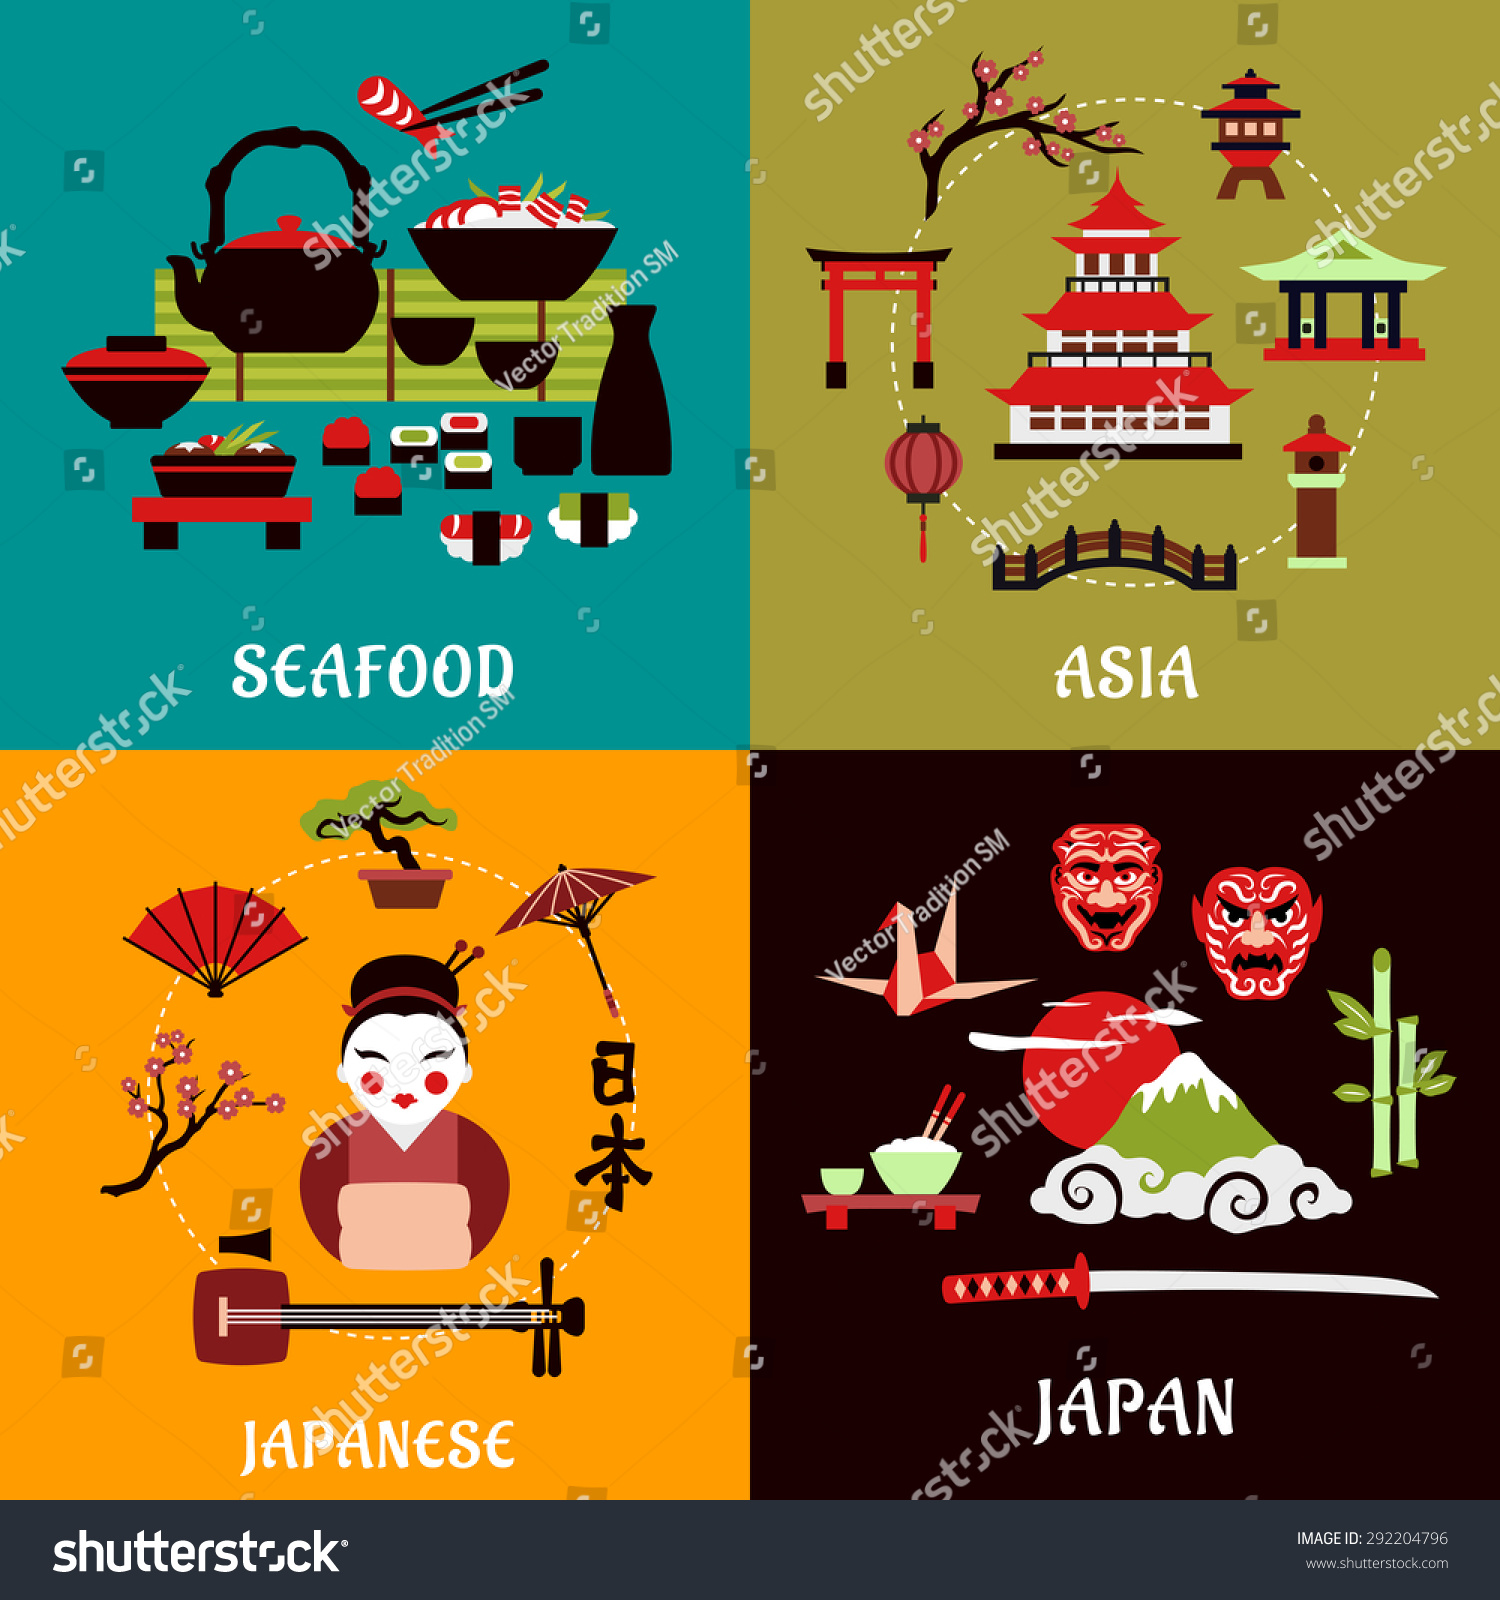 Royalty Free Japanese Culture History And Cuisine 292204796 Stock